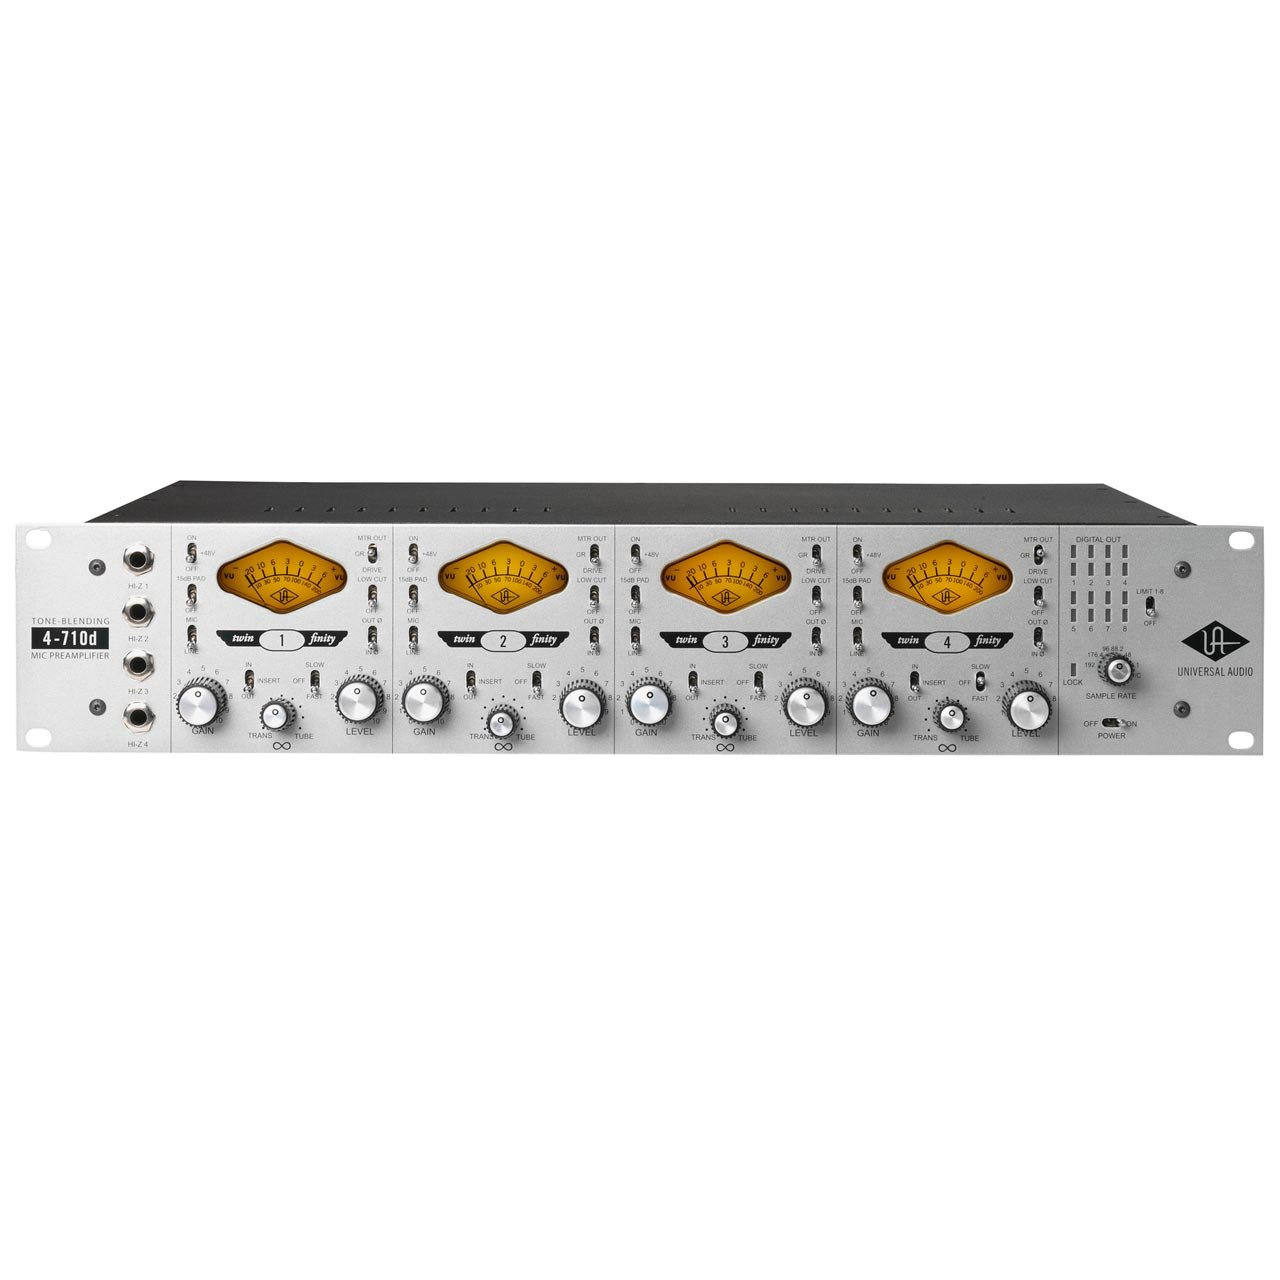 Universal Audio 4-710d Four-channel Microphone Preamplifier